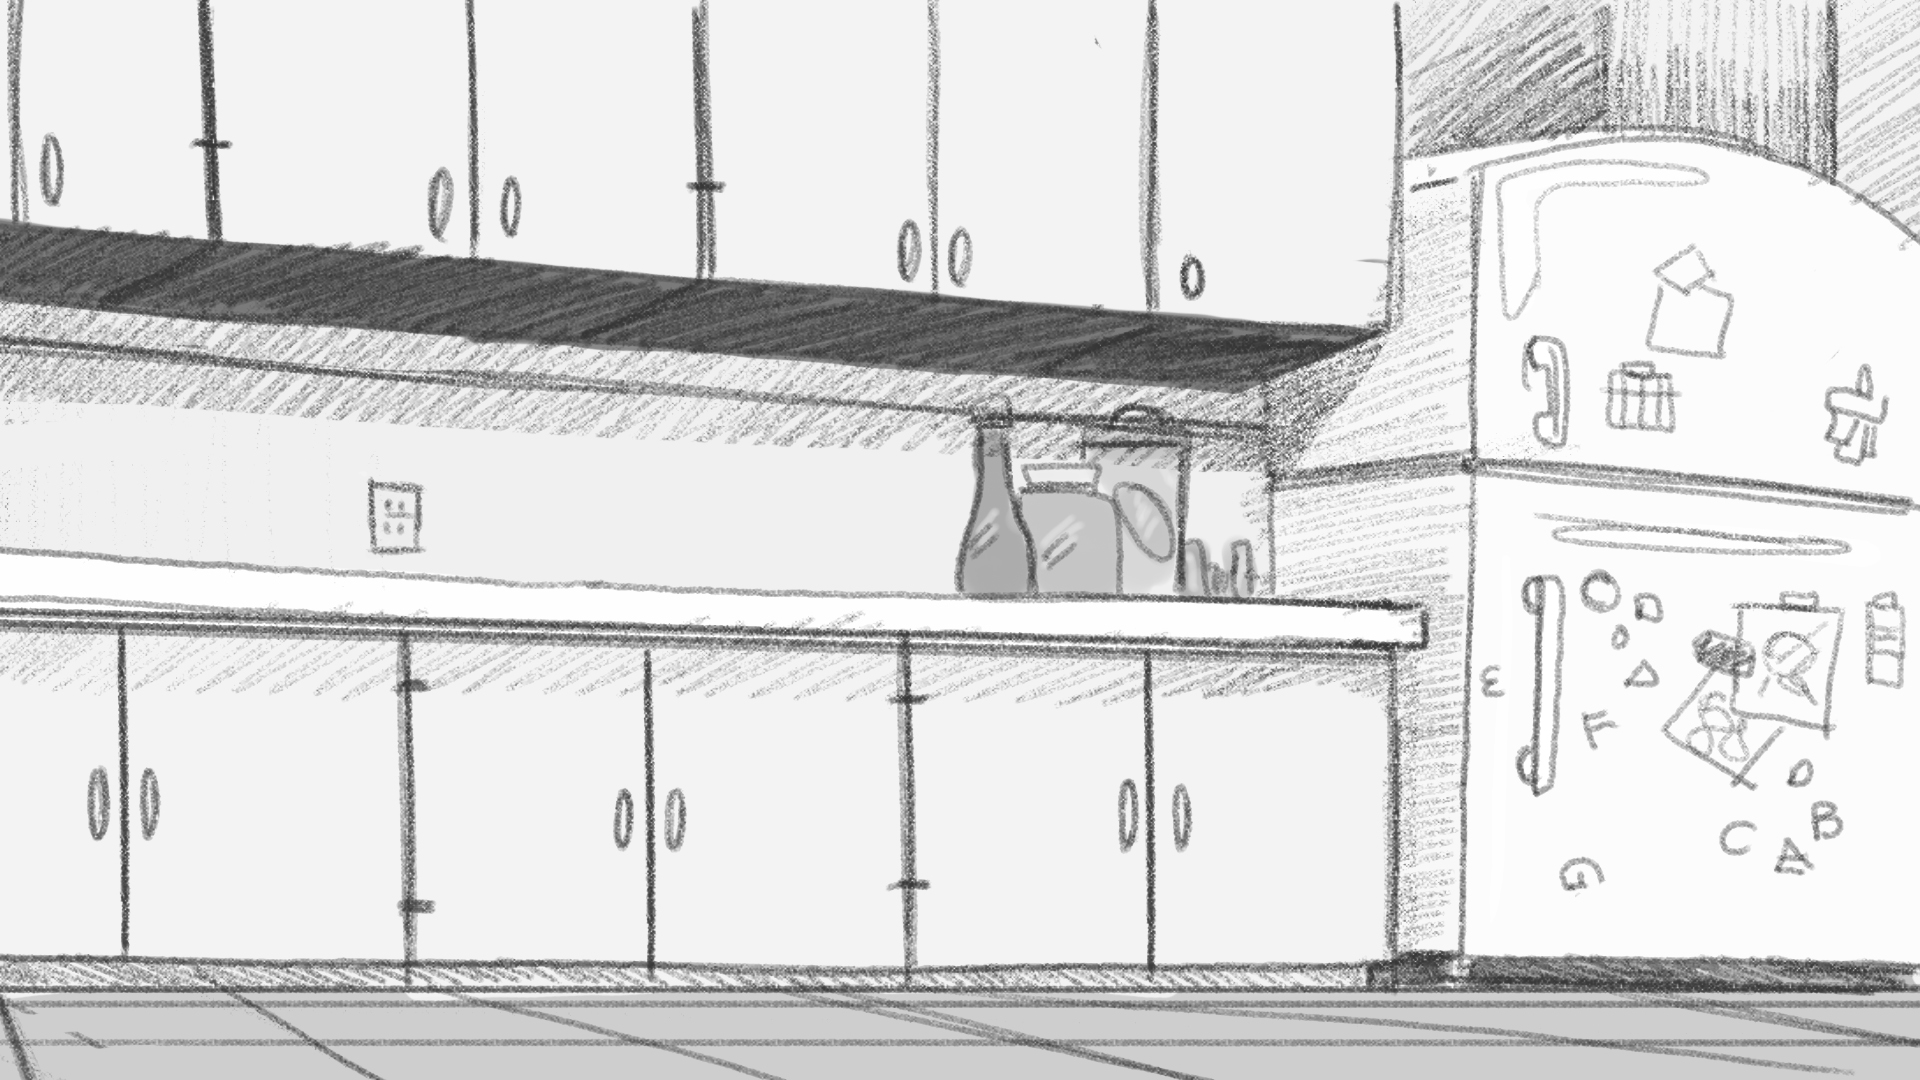 Background painting for Heavy lift animation